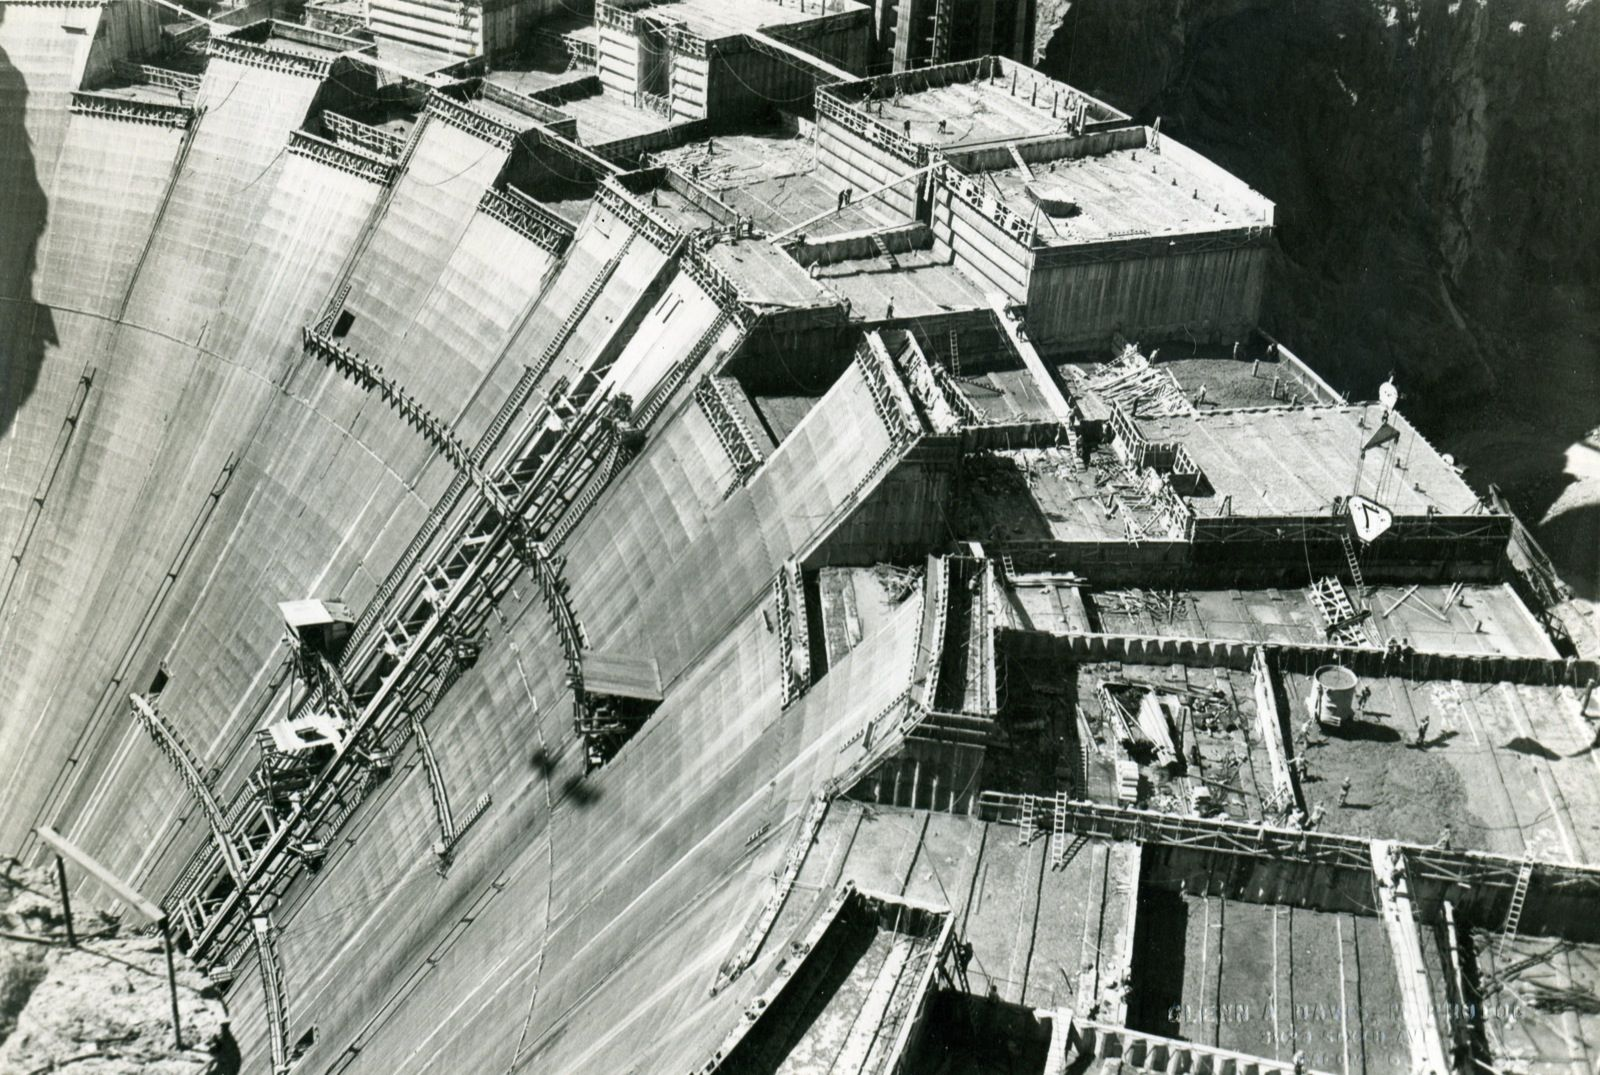 Hoover Dam Construction On The Colorado River On The Arizona Nevada Border Completed In 1936 It Is 221 M 726 Ft High Hoover Dam Construction Hoover Dam Dam